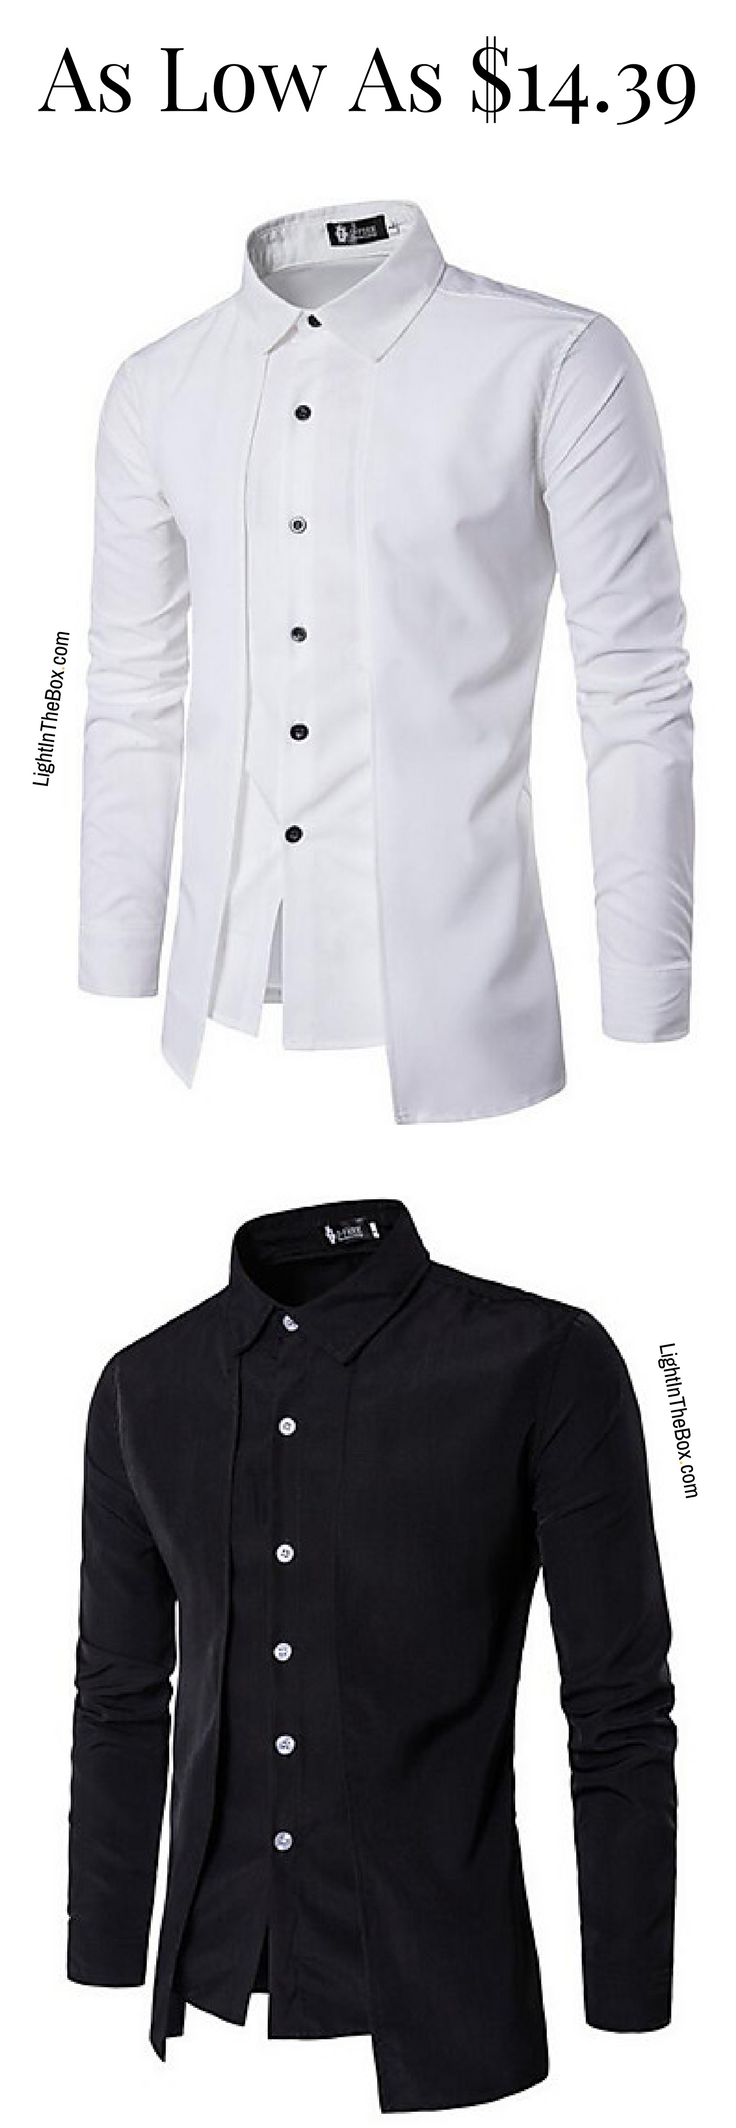 725267fe3bd Unique design stylish men formal shirt. Wear it to work or special ...